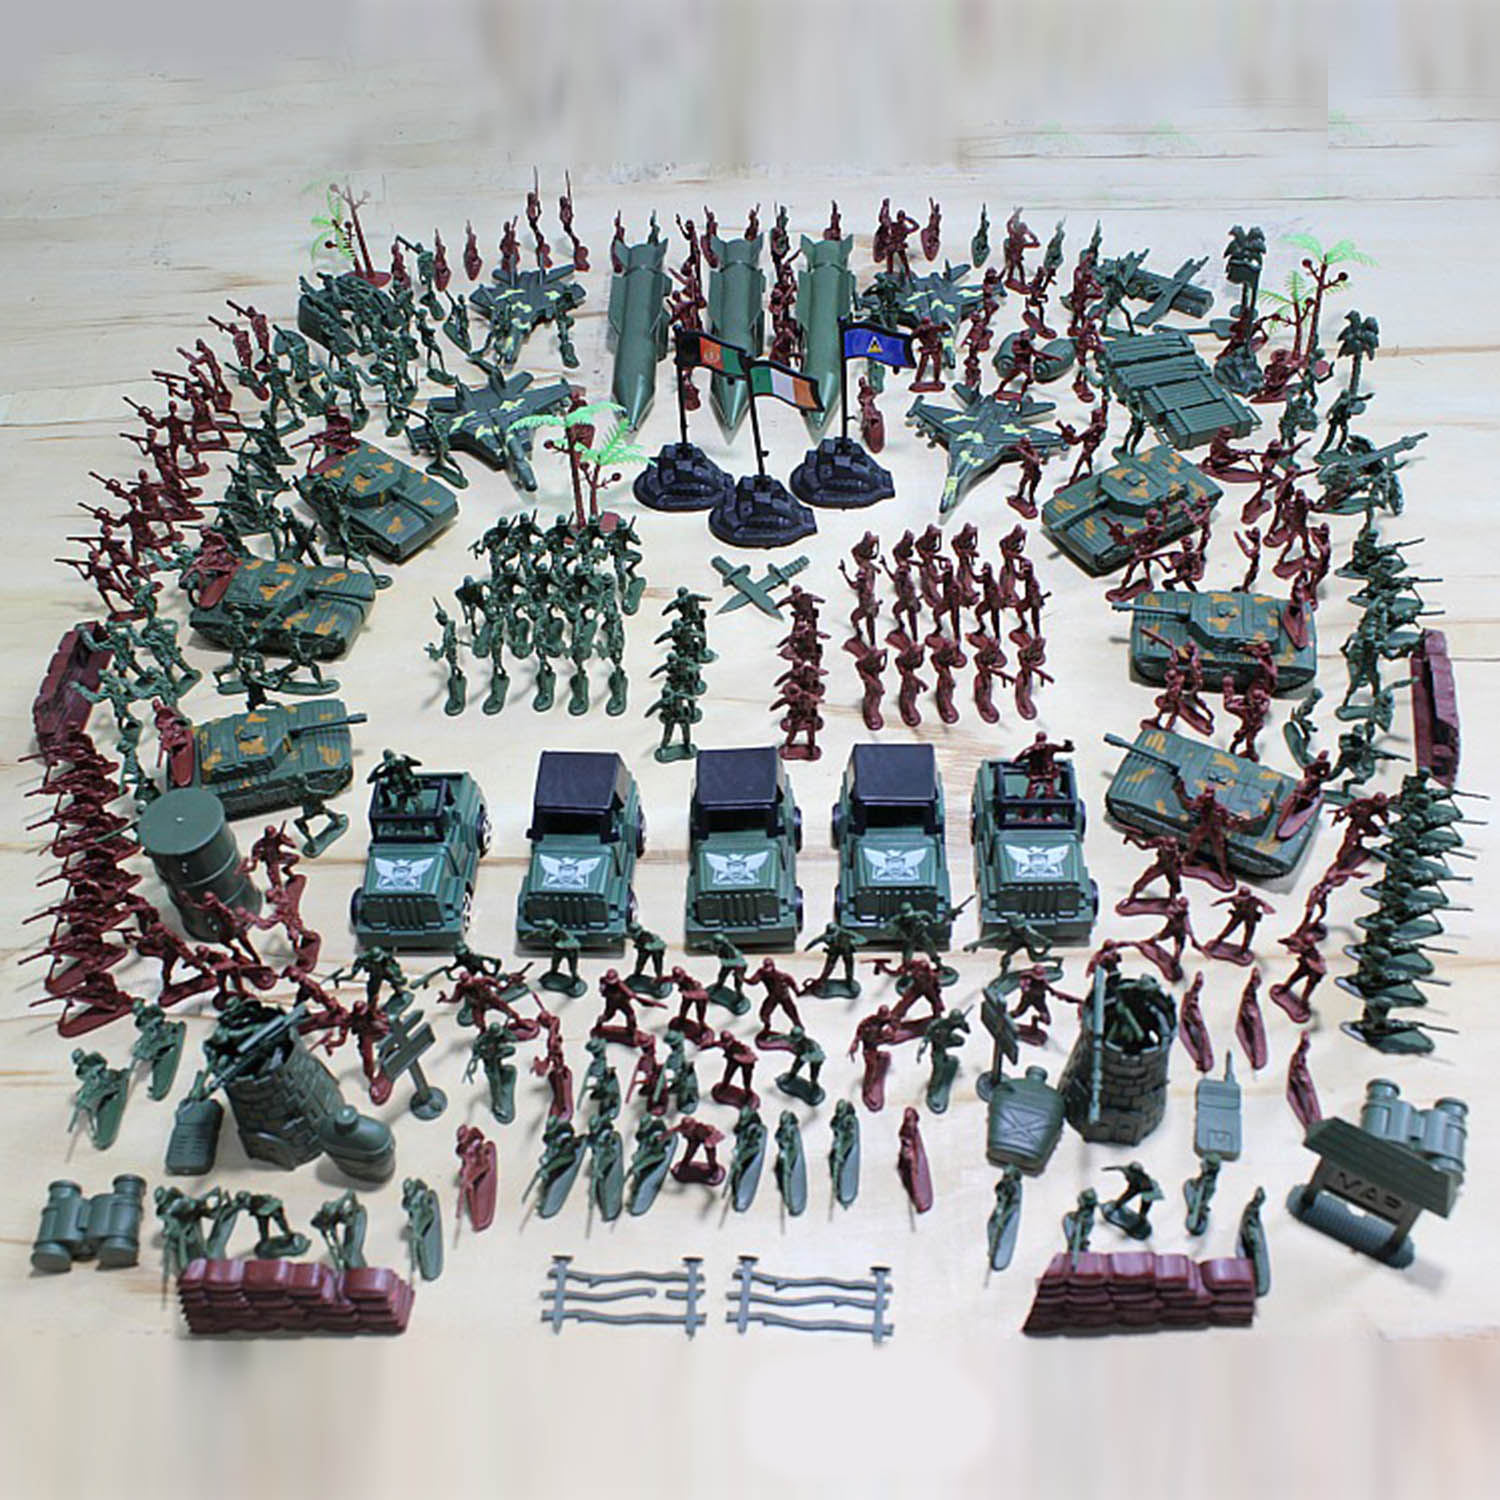 Besegad 307pcs Plastic Army Men Action Figures Battle Group Military Soldier Playset with Army Base Model Toys AccessoriesBesegad 307pcs Plastic Army Men Action Figures Battle Group Military Soldier Playset with Army Base Model Toys Accessories